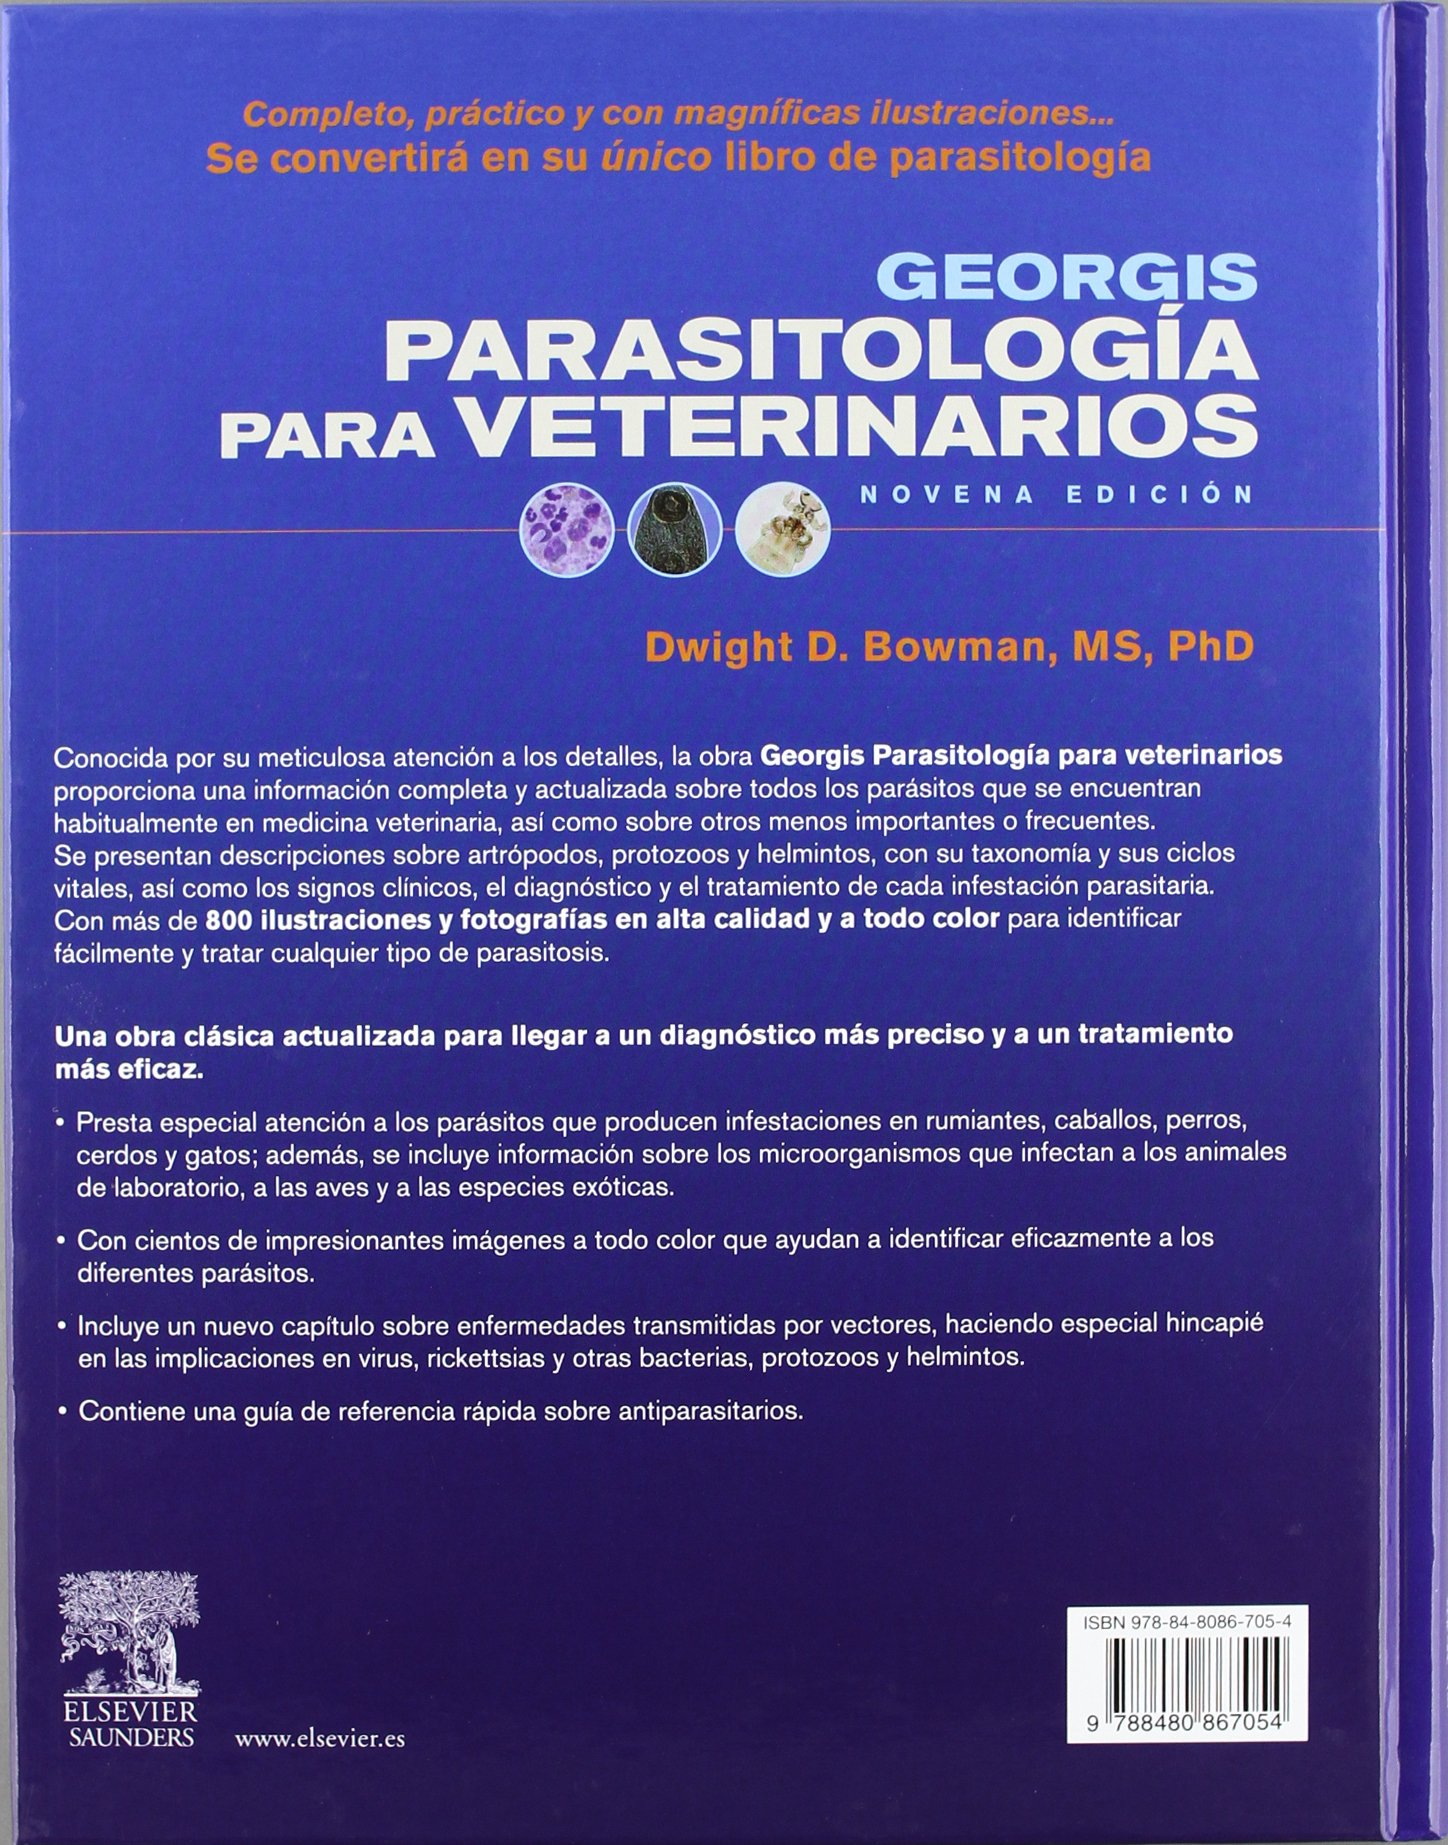 Georgis Parasitología para veterinarios: D.D. Bowman: 9788480867054: Amazon.com: Books